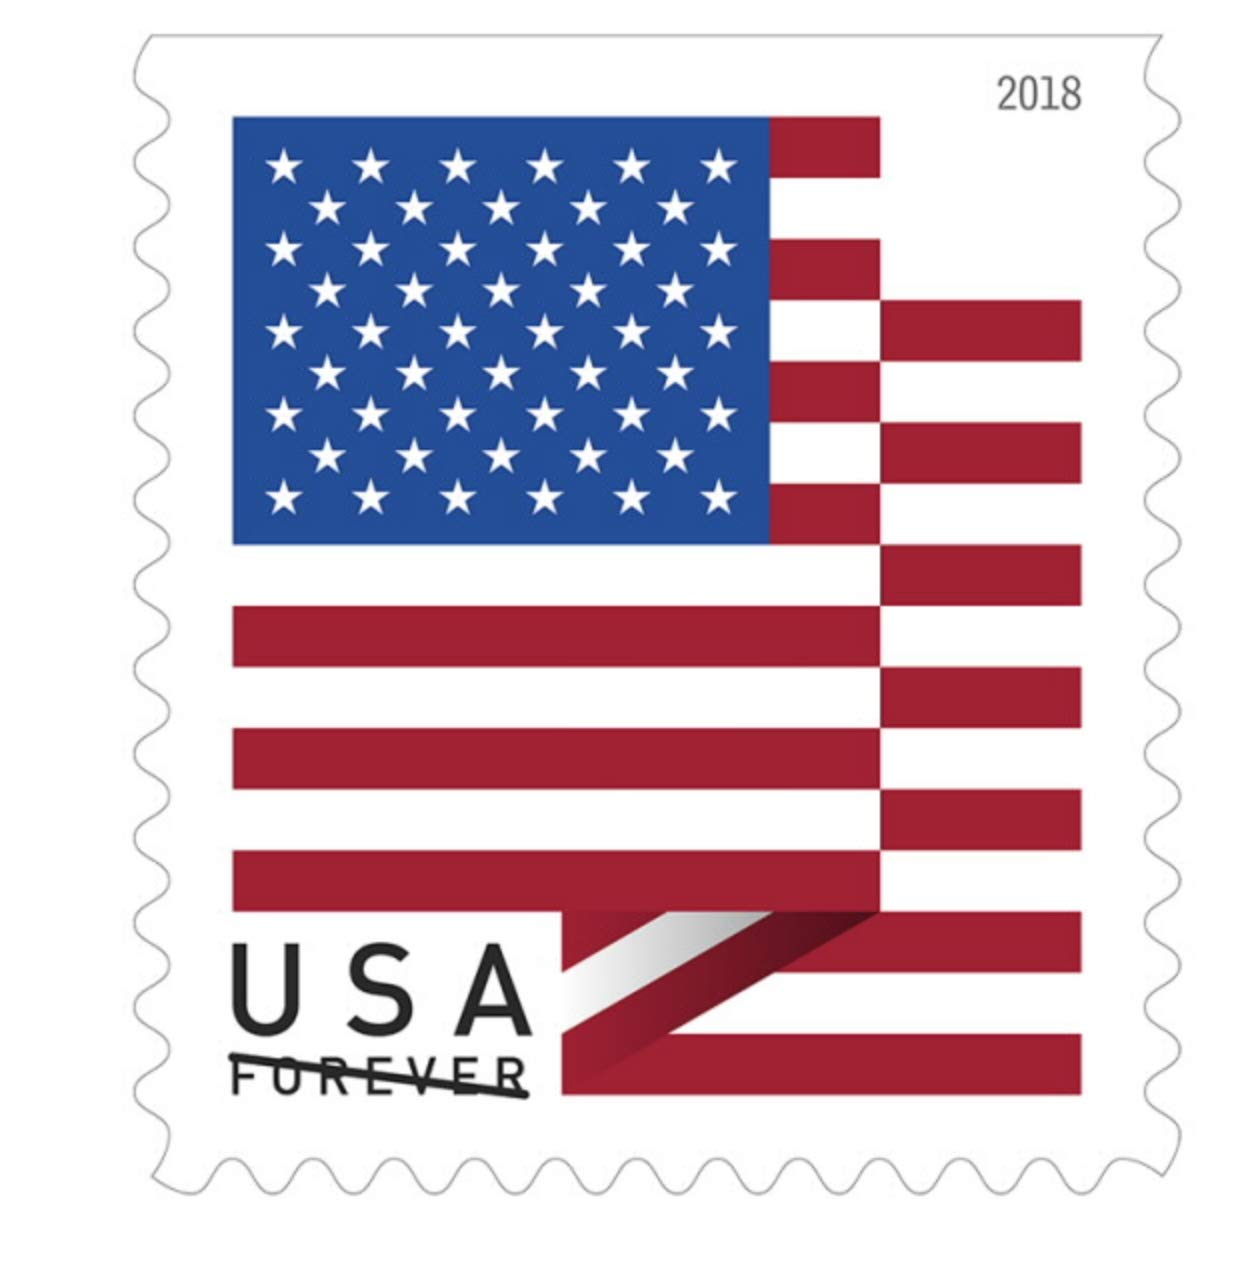 USPS Forever Flag Stamps - 1 Roll (100 stamps)